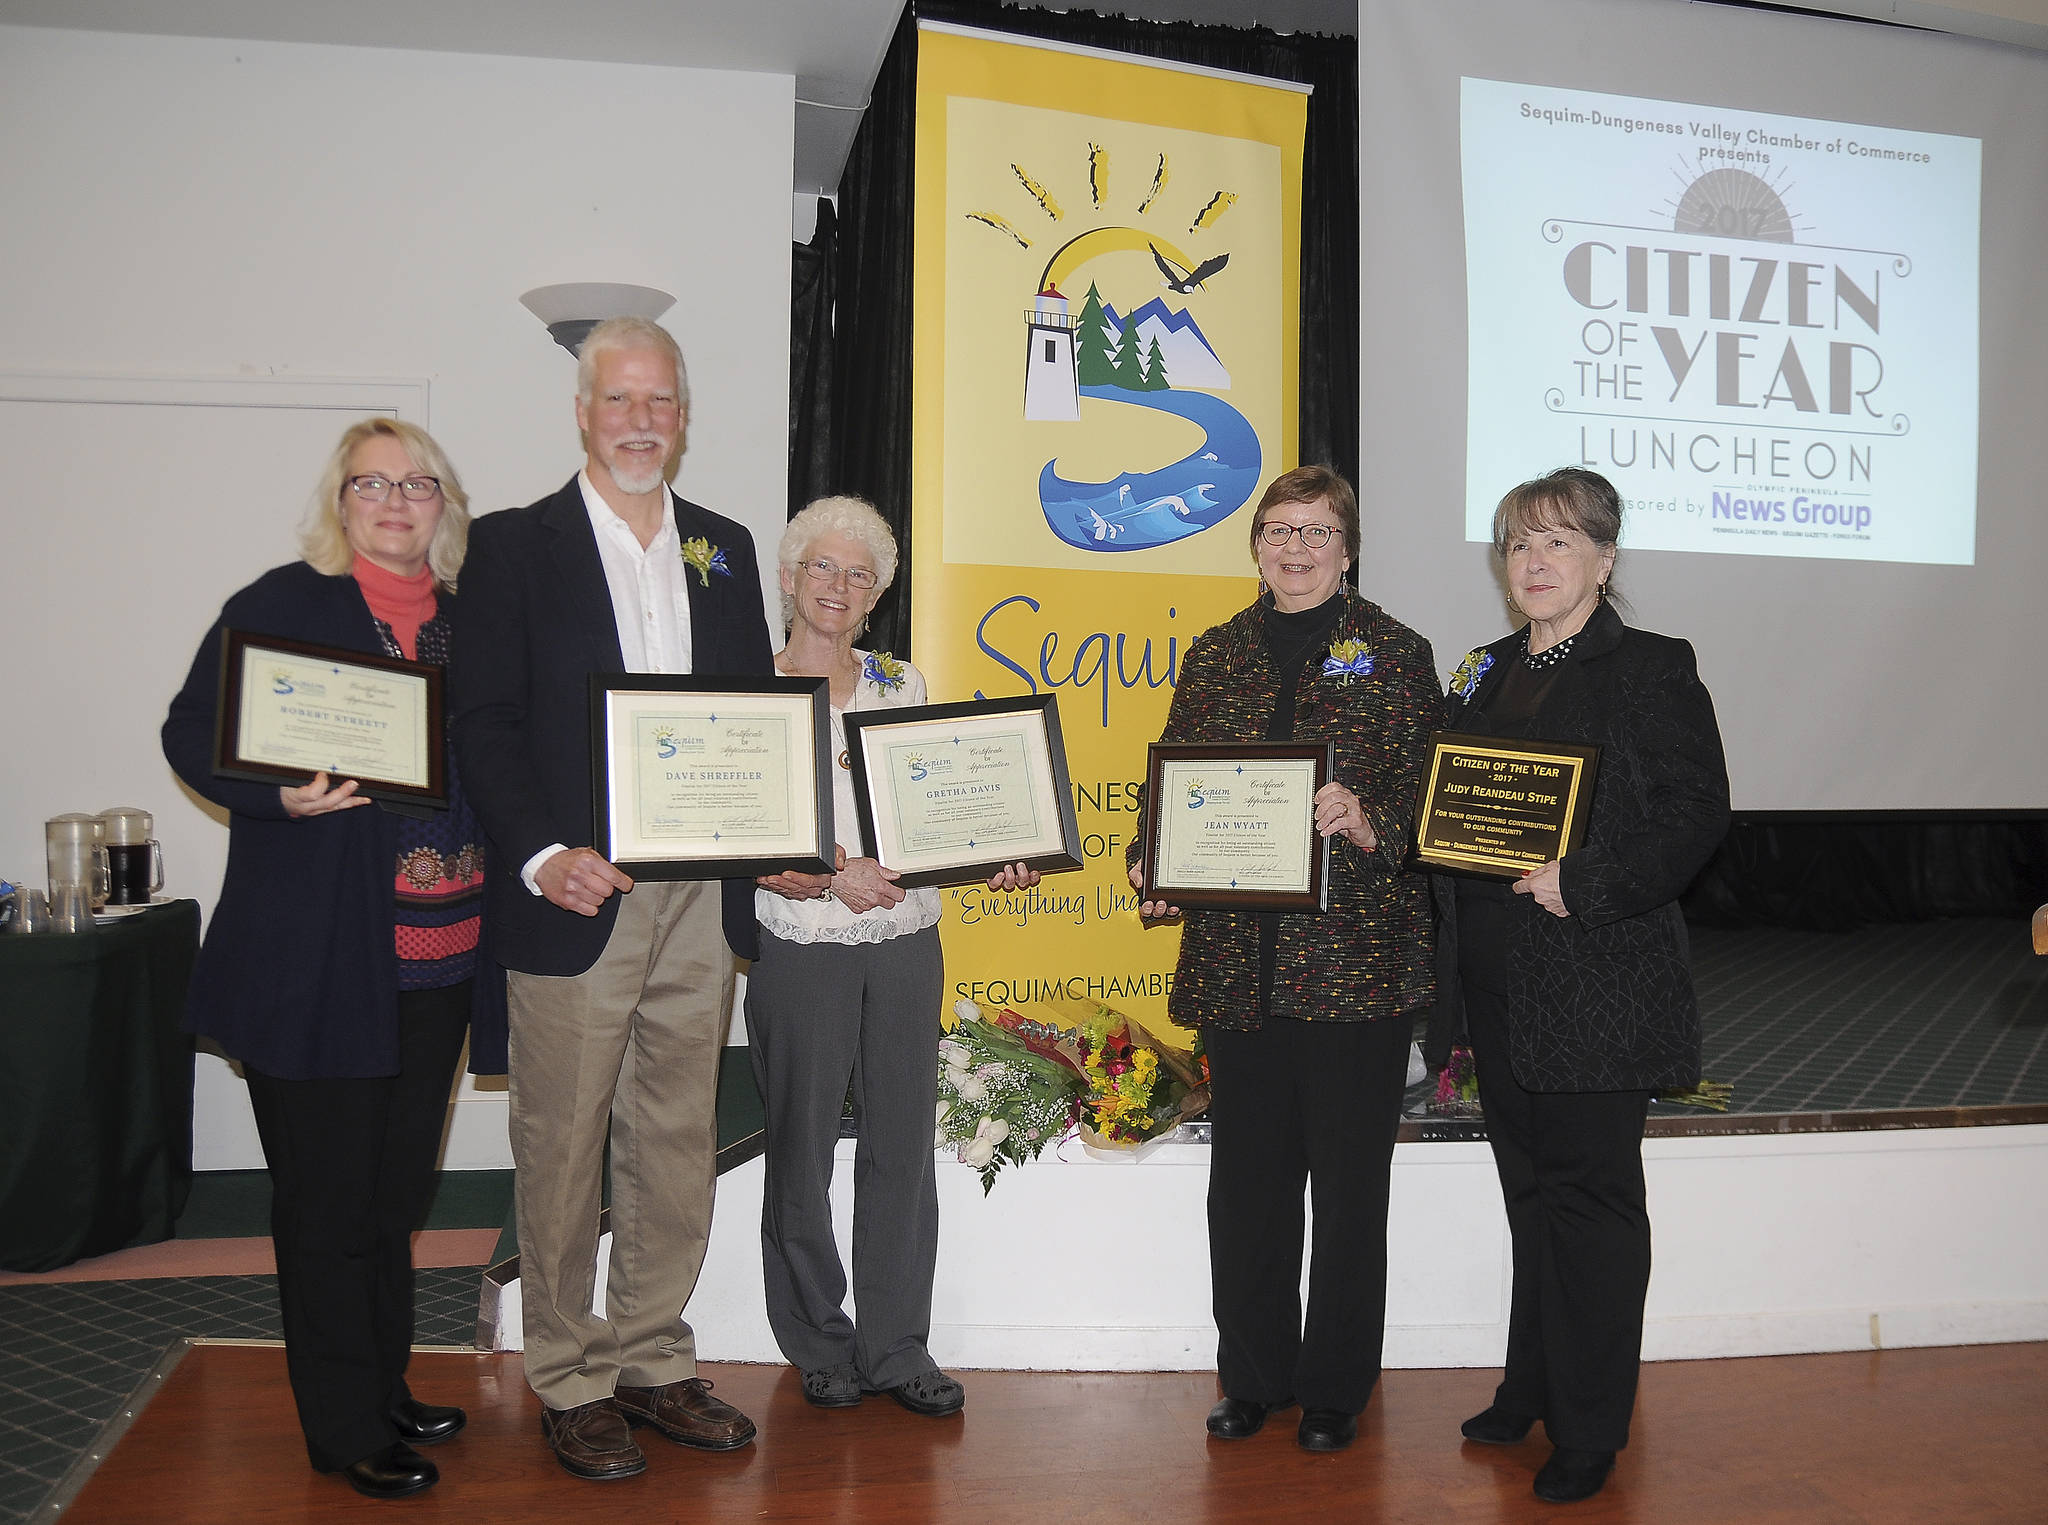 Michael Dashiell/Olympic Peninsula News Group                                Finalists for the Sequim-Dungeness Valley Chamber of Commerce's 2017 Citizen of the Year join award-winner Judy Reandeau Stipe, far right, following the chamber's award ceremony Tuesday. They include, from left, Robert Streett (represented by his wife, Josslyn), Dave Shreffler, Gretha Davis and Jean Wyatt.